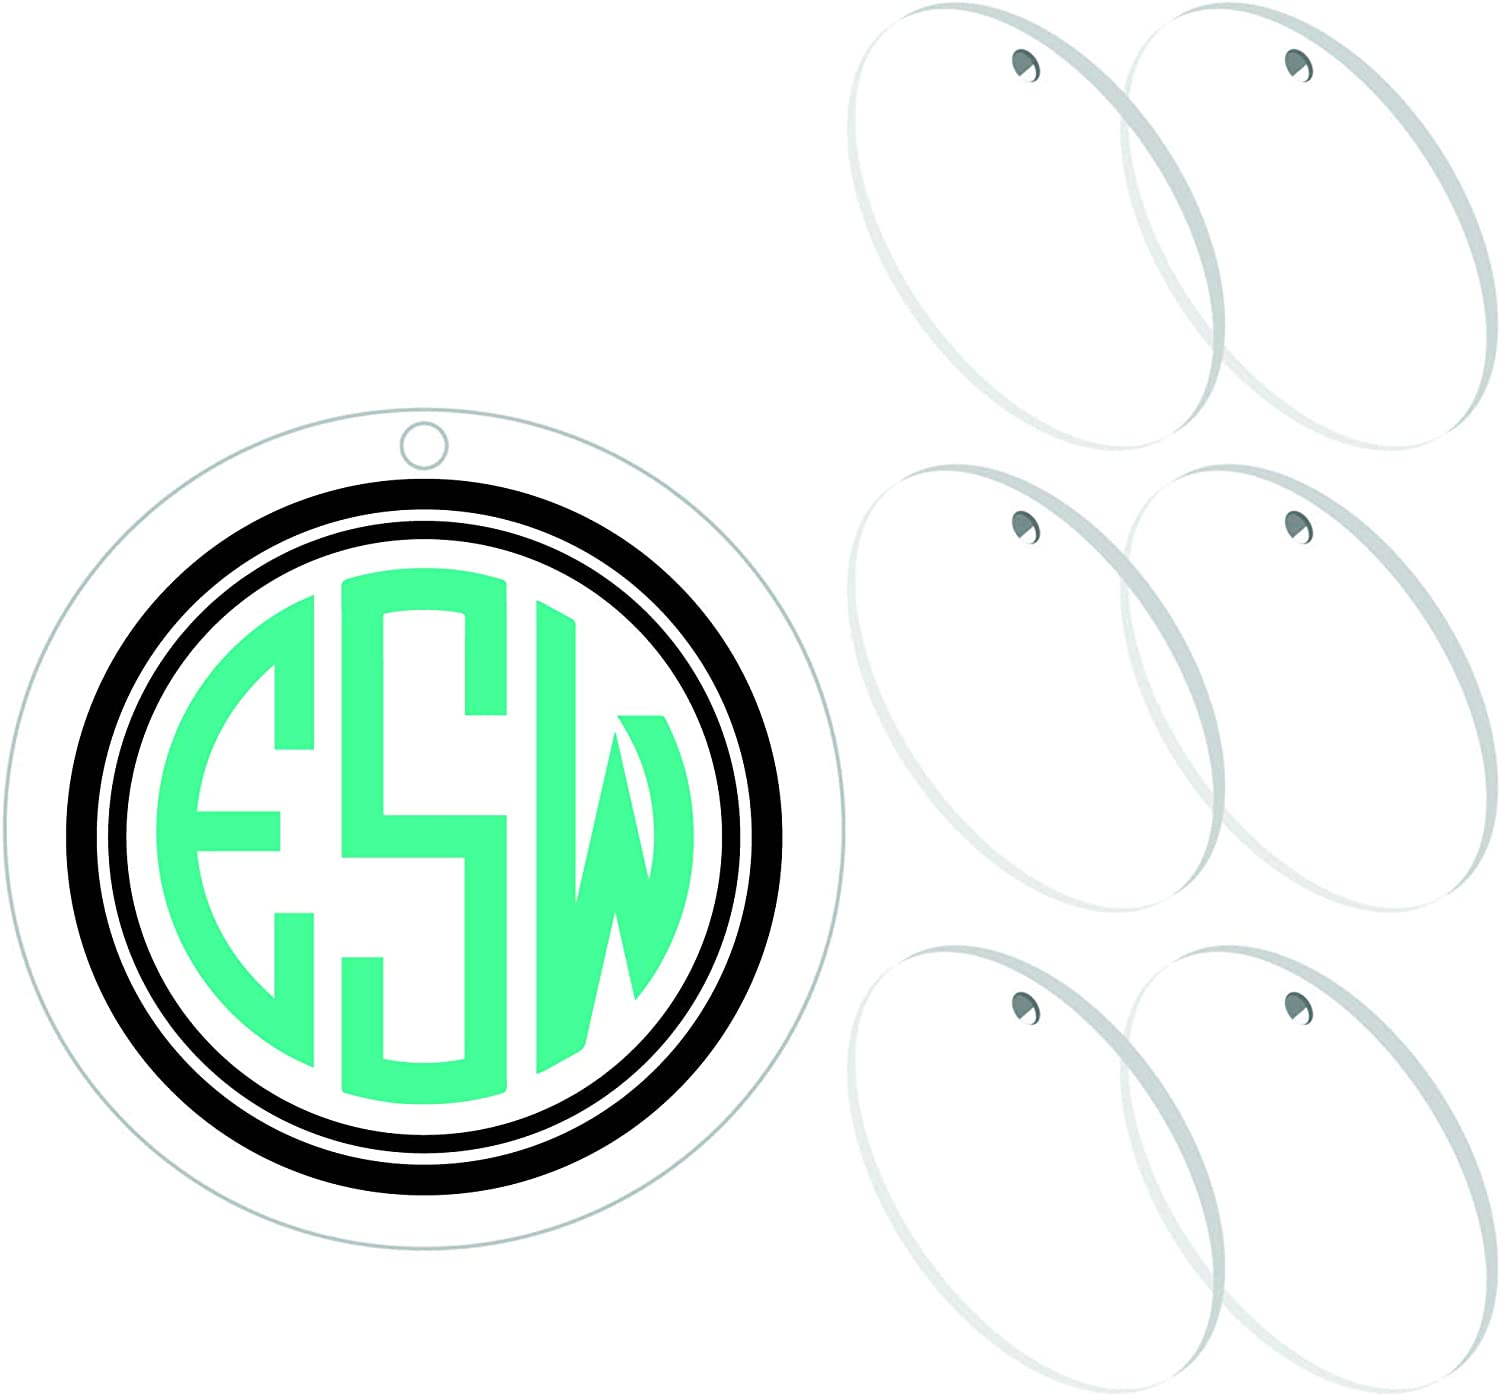 !RAKRISA 25 Pcs 2 Inch Diameter Round Acrylic Clear Keychain Blanks | 1/8 Inch Thick (3mm) Durable, Water Resistant and Smooth Edges | Perfect for DIY Projects and Crafts (25, 2 Inch) 71JhCYmLgKL